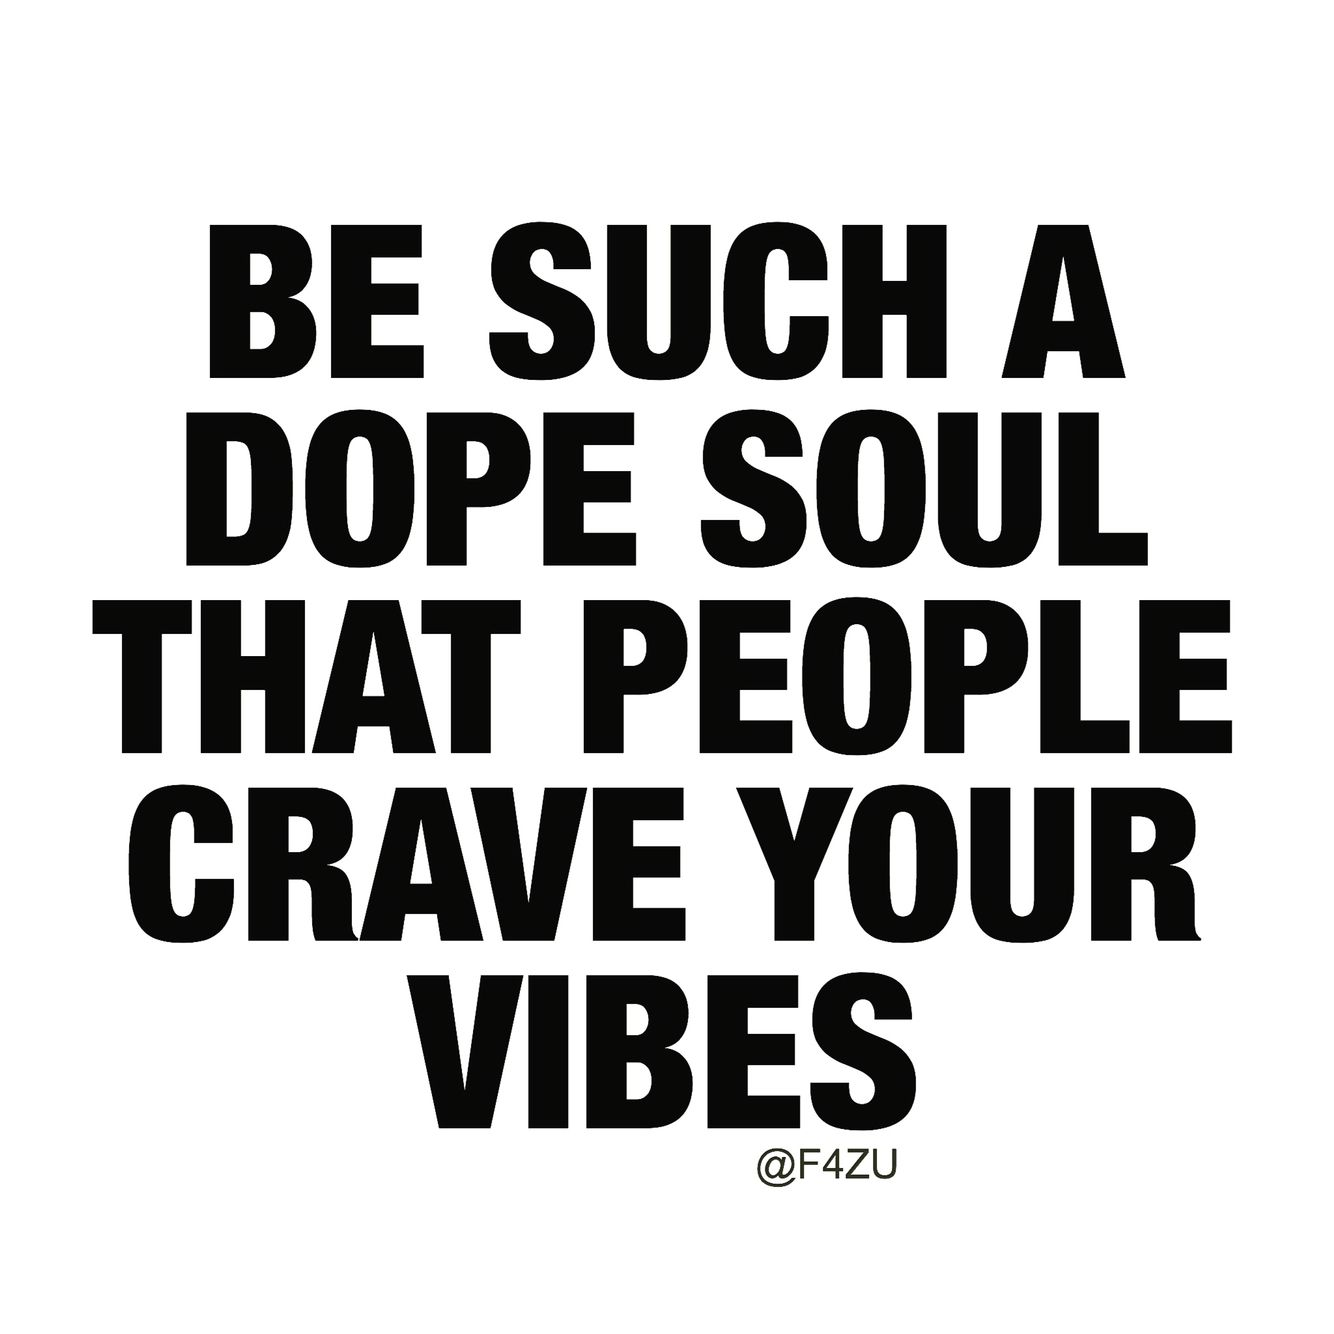 Be such a dope Soul, that people crave your vibes